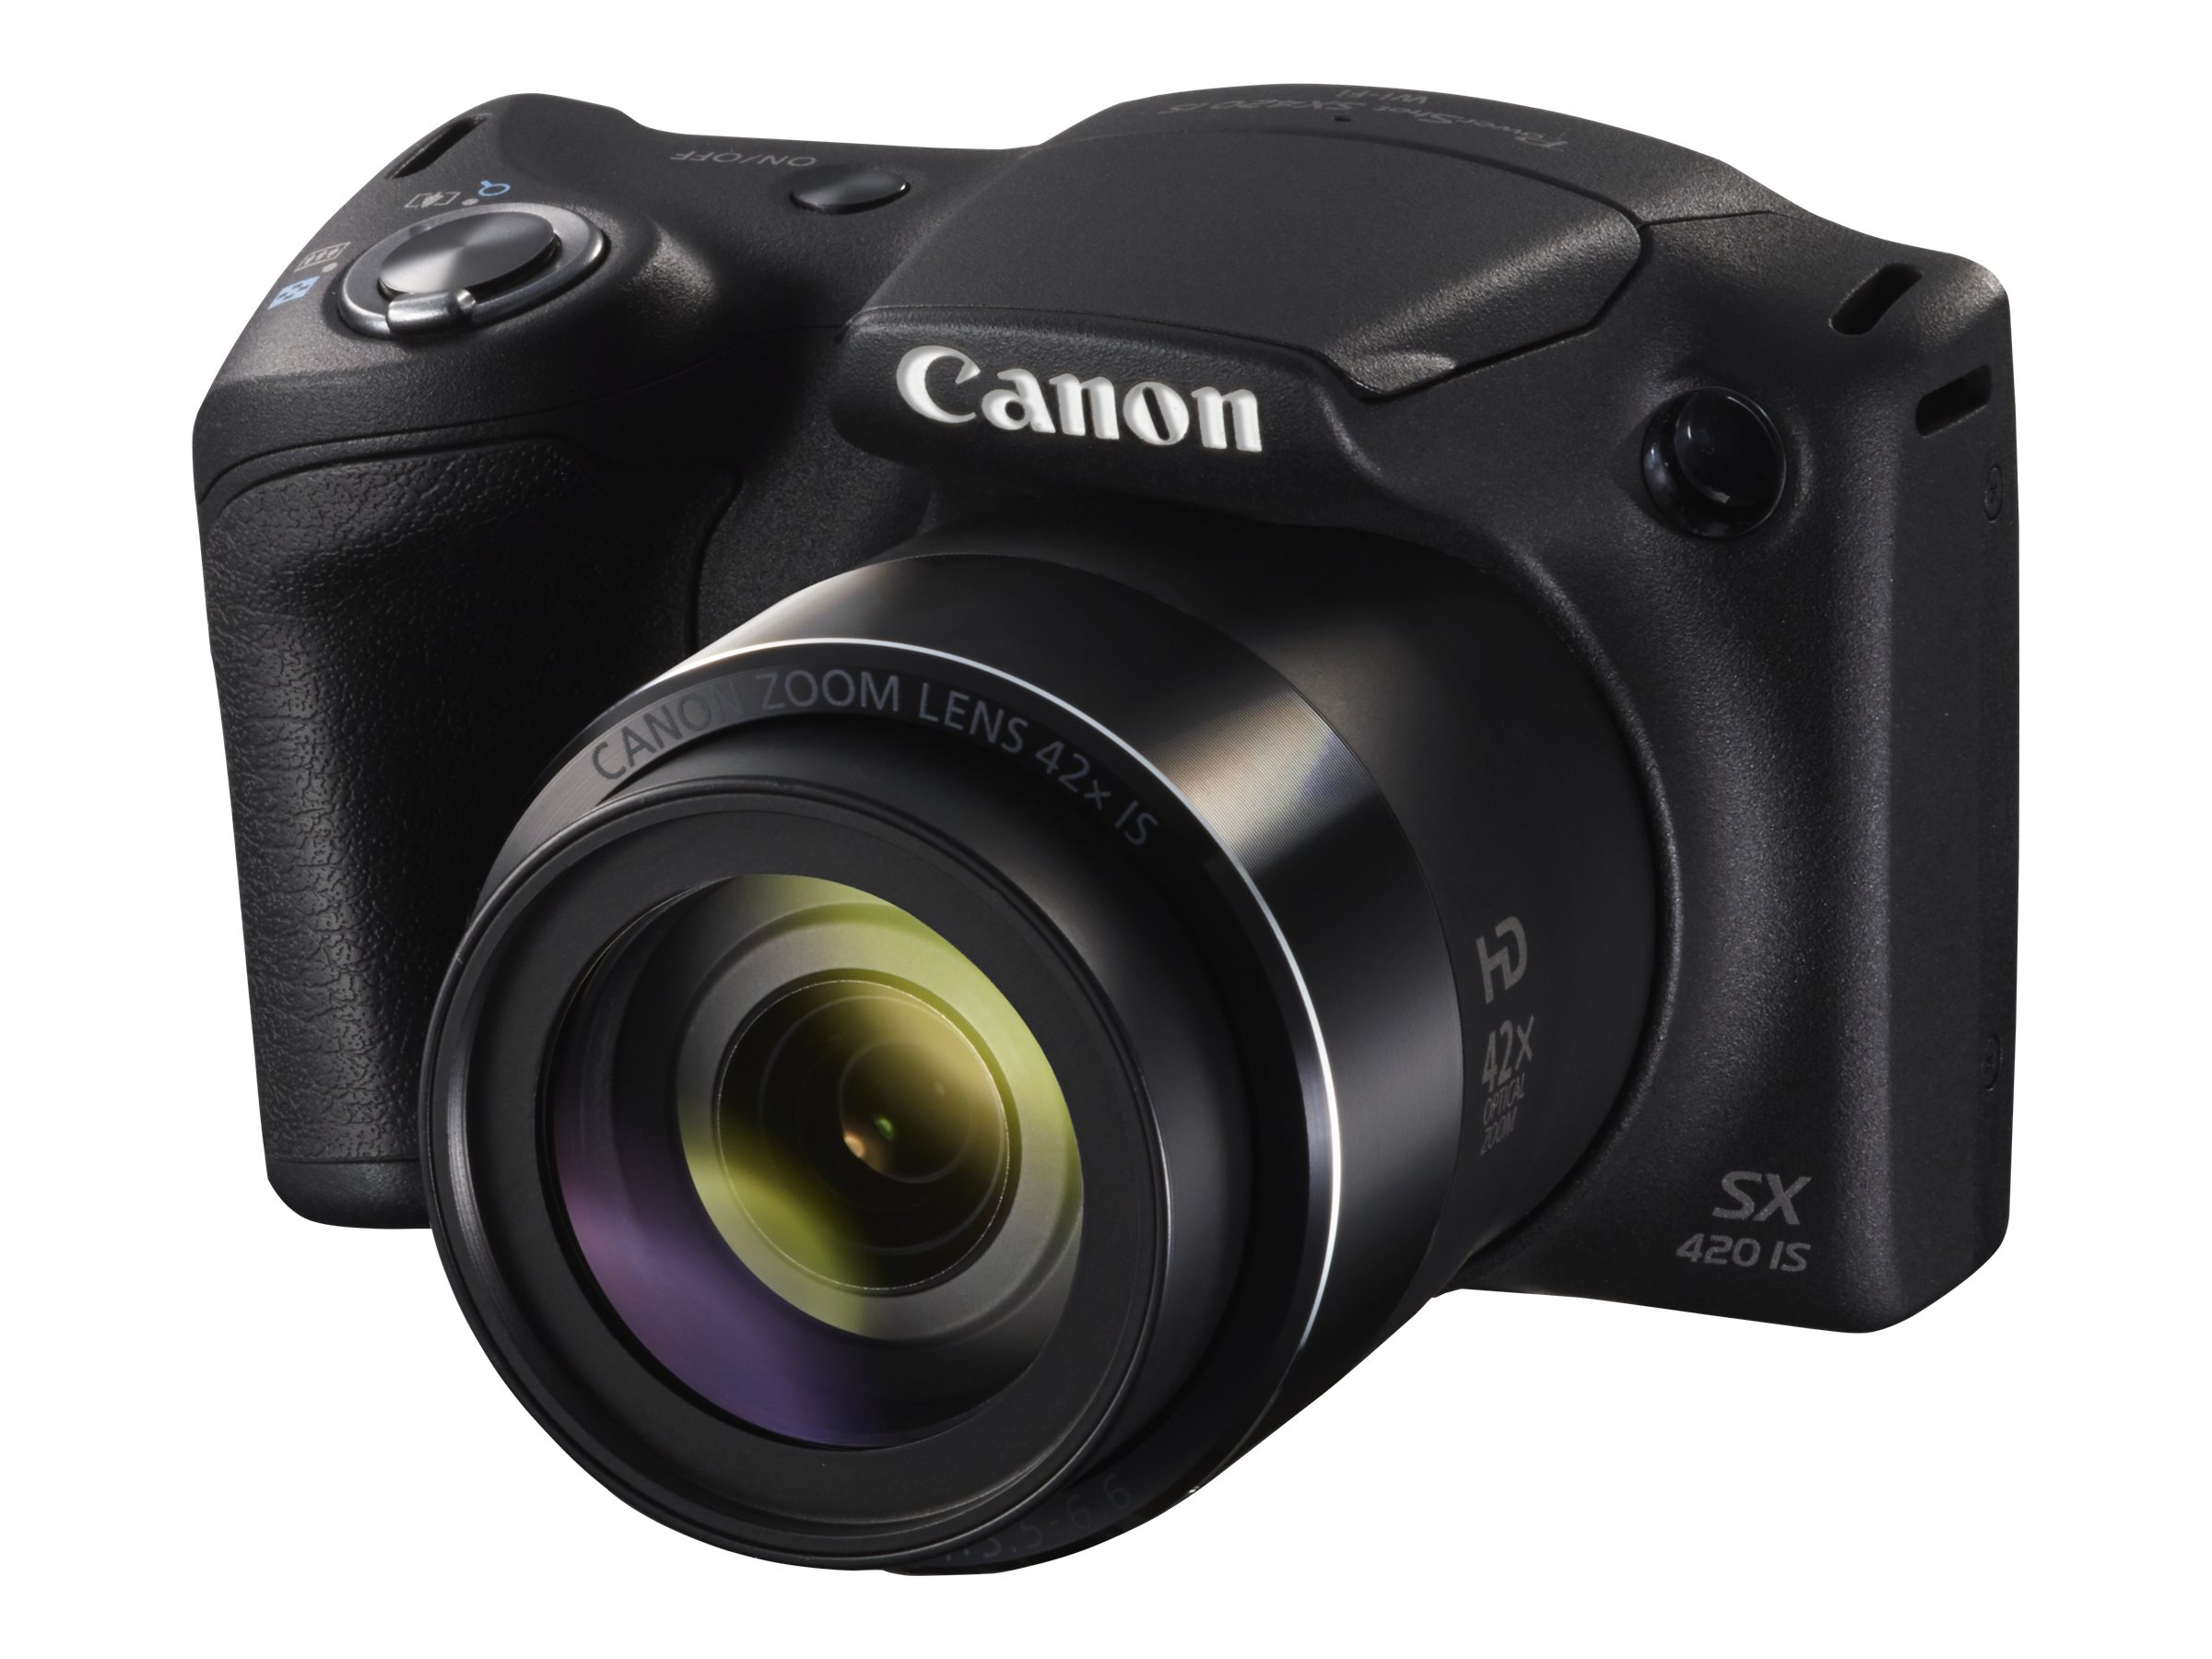 Canon PowerShot SX420 IS Digital Camera, Black